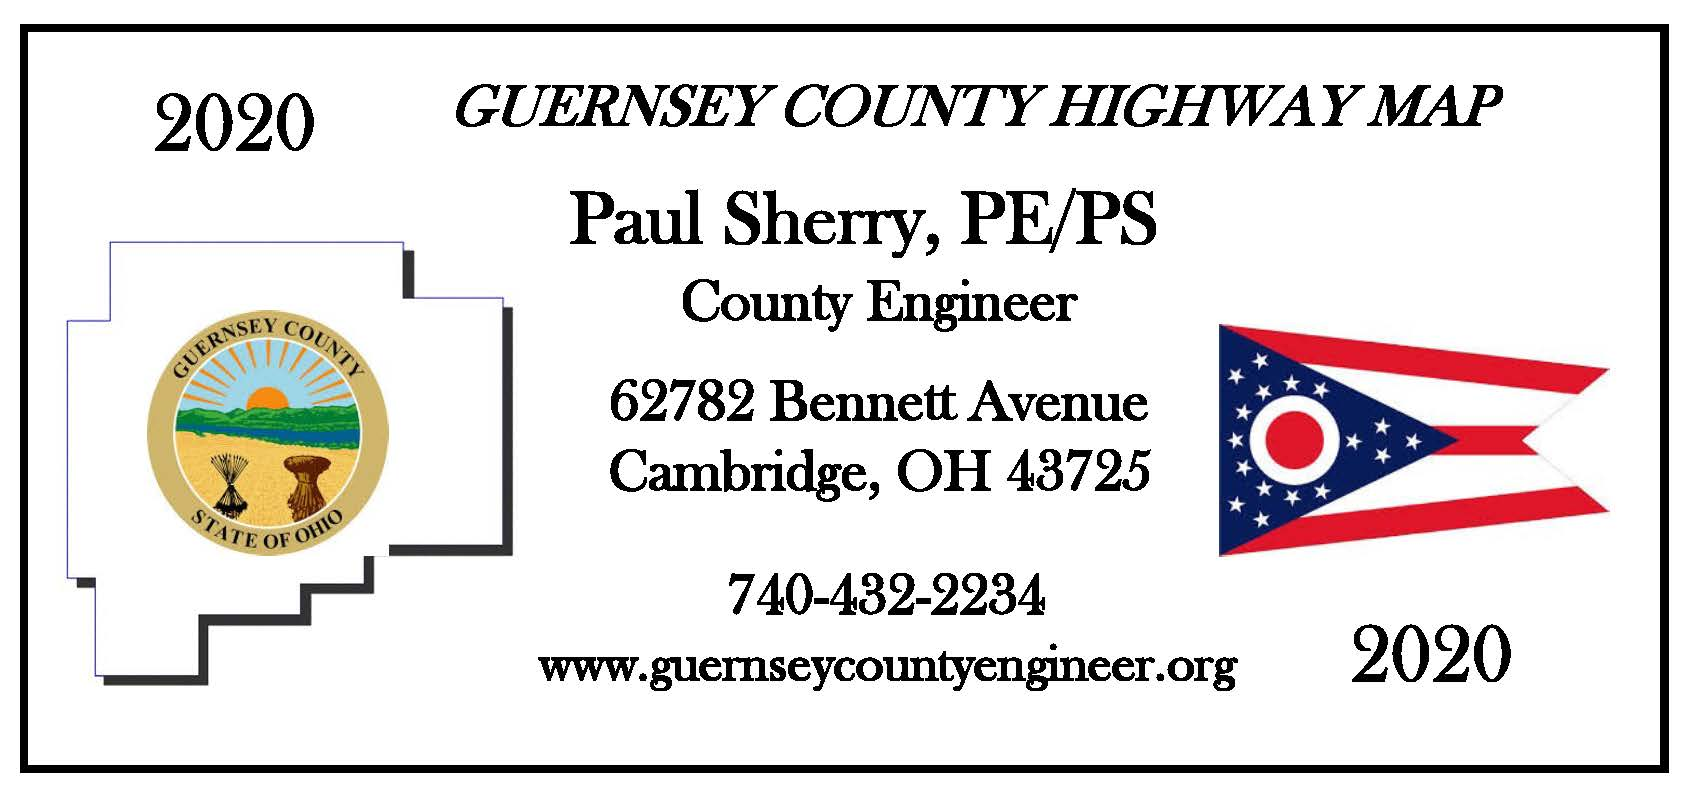 2020 Guernsey County Highway Maps